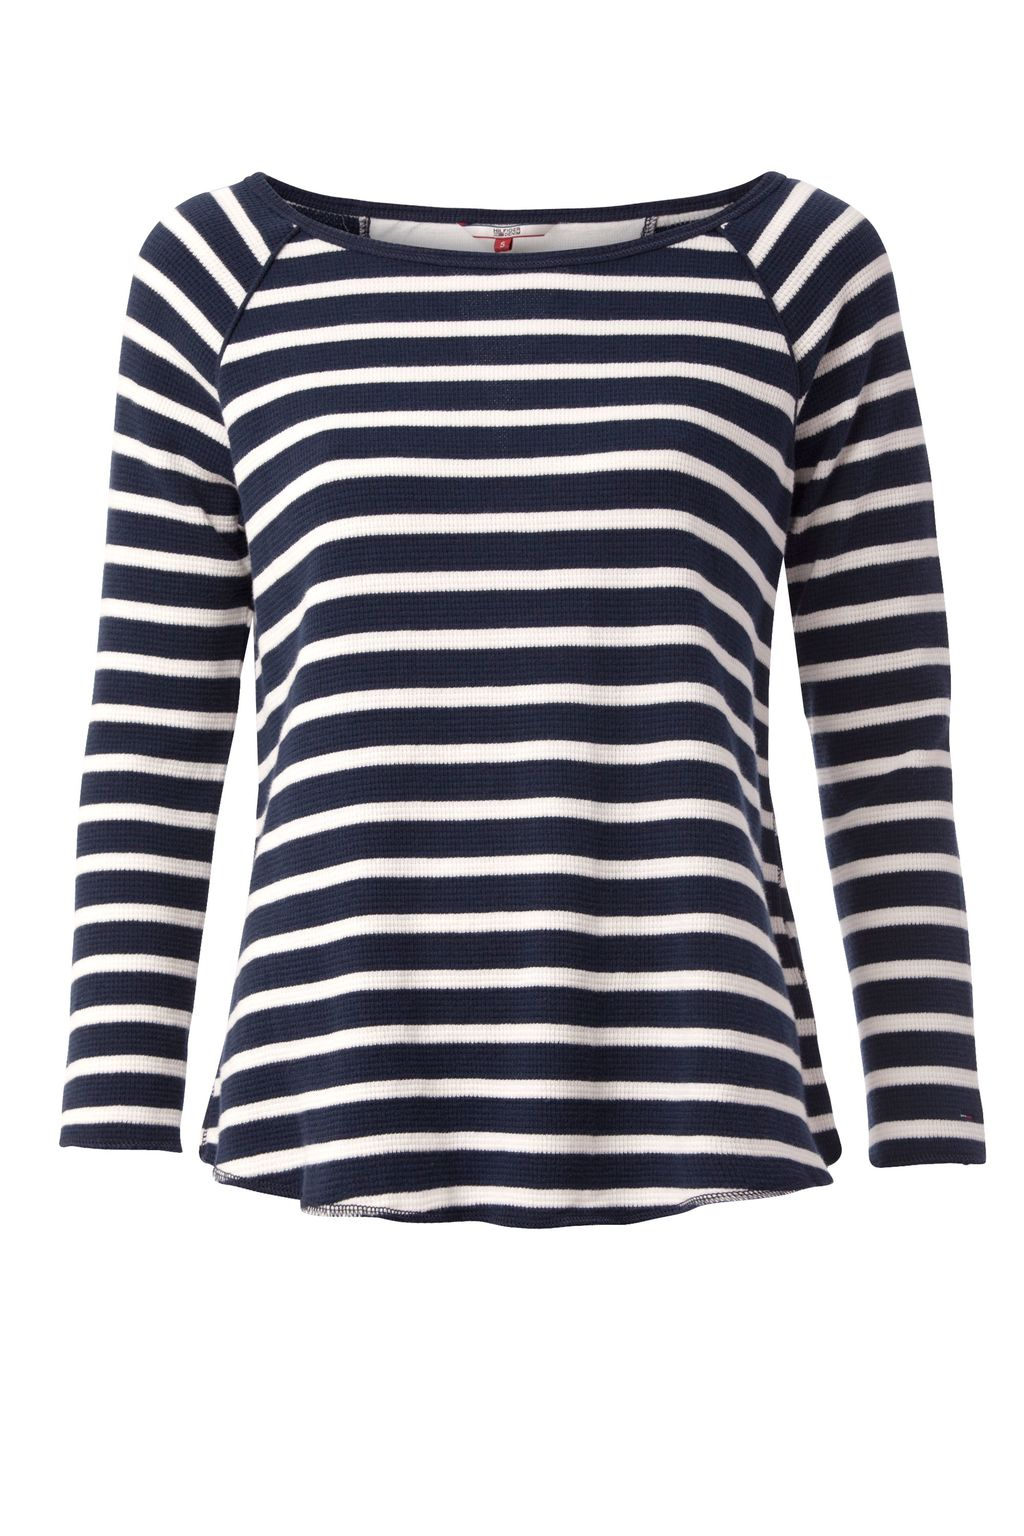 Waffle Lace Top, Navy - pattern: horizontal stripes; secondary colour: white; predominant colour: navy; occasions: casual; length: standard; style: top; fibres: cotton - 100%; fit: body skimming; neckline: crew; sleeve length: long sleeve; sleeve style: standard; pattern type: fabric; texture group: jersey - stretchy/drapey; multicoloured: multicoloured; season: s/s 2016; wardrobe: basic